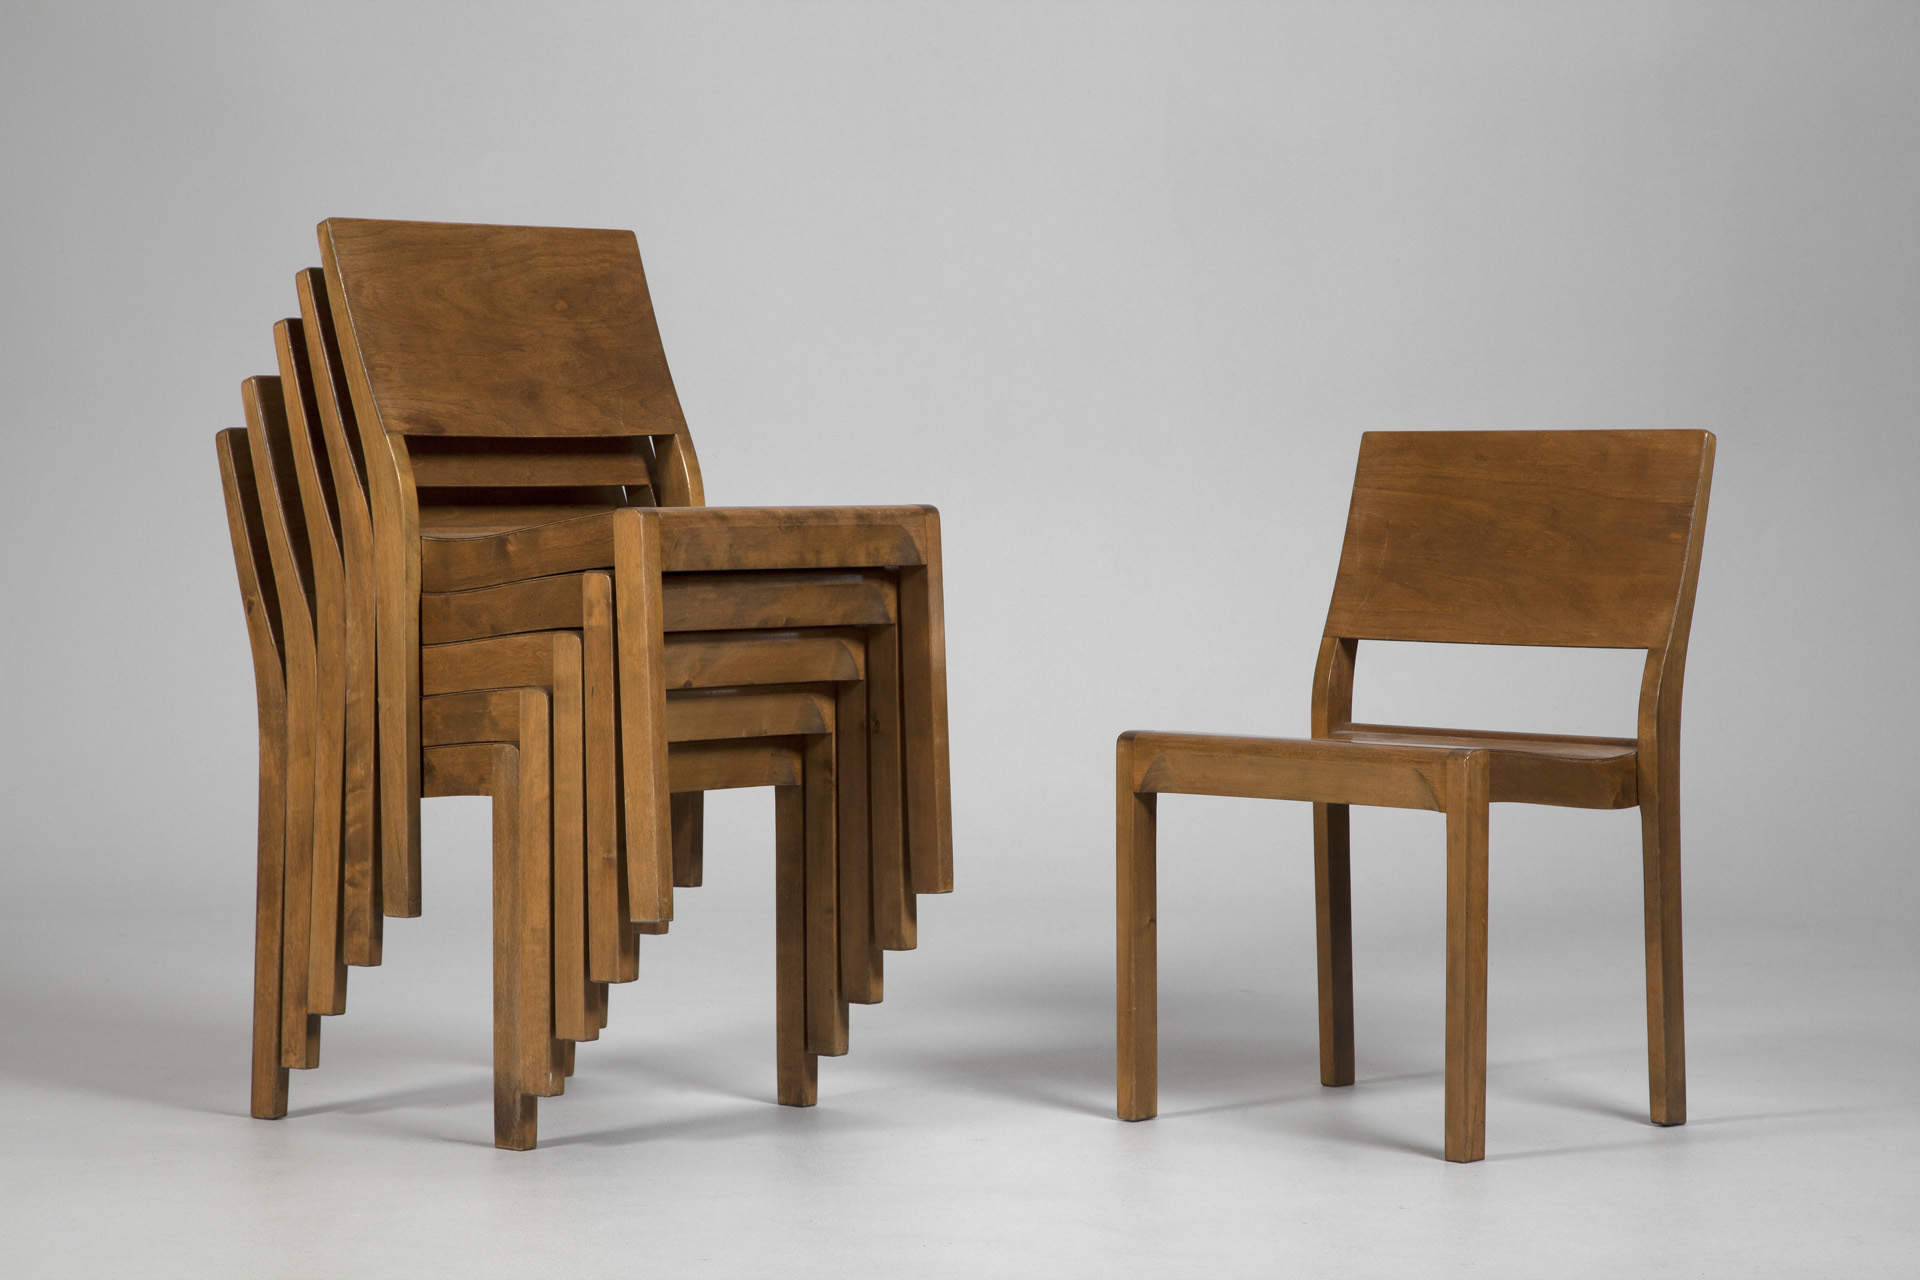 Jacksons Stackable Model 611 Chairs Alvar Aalto